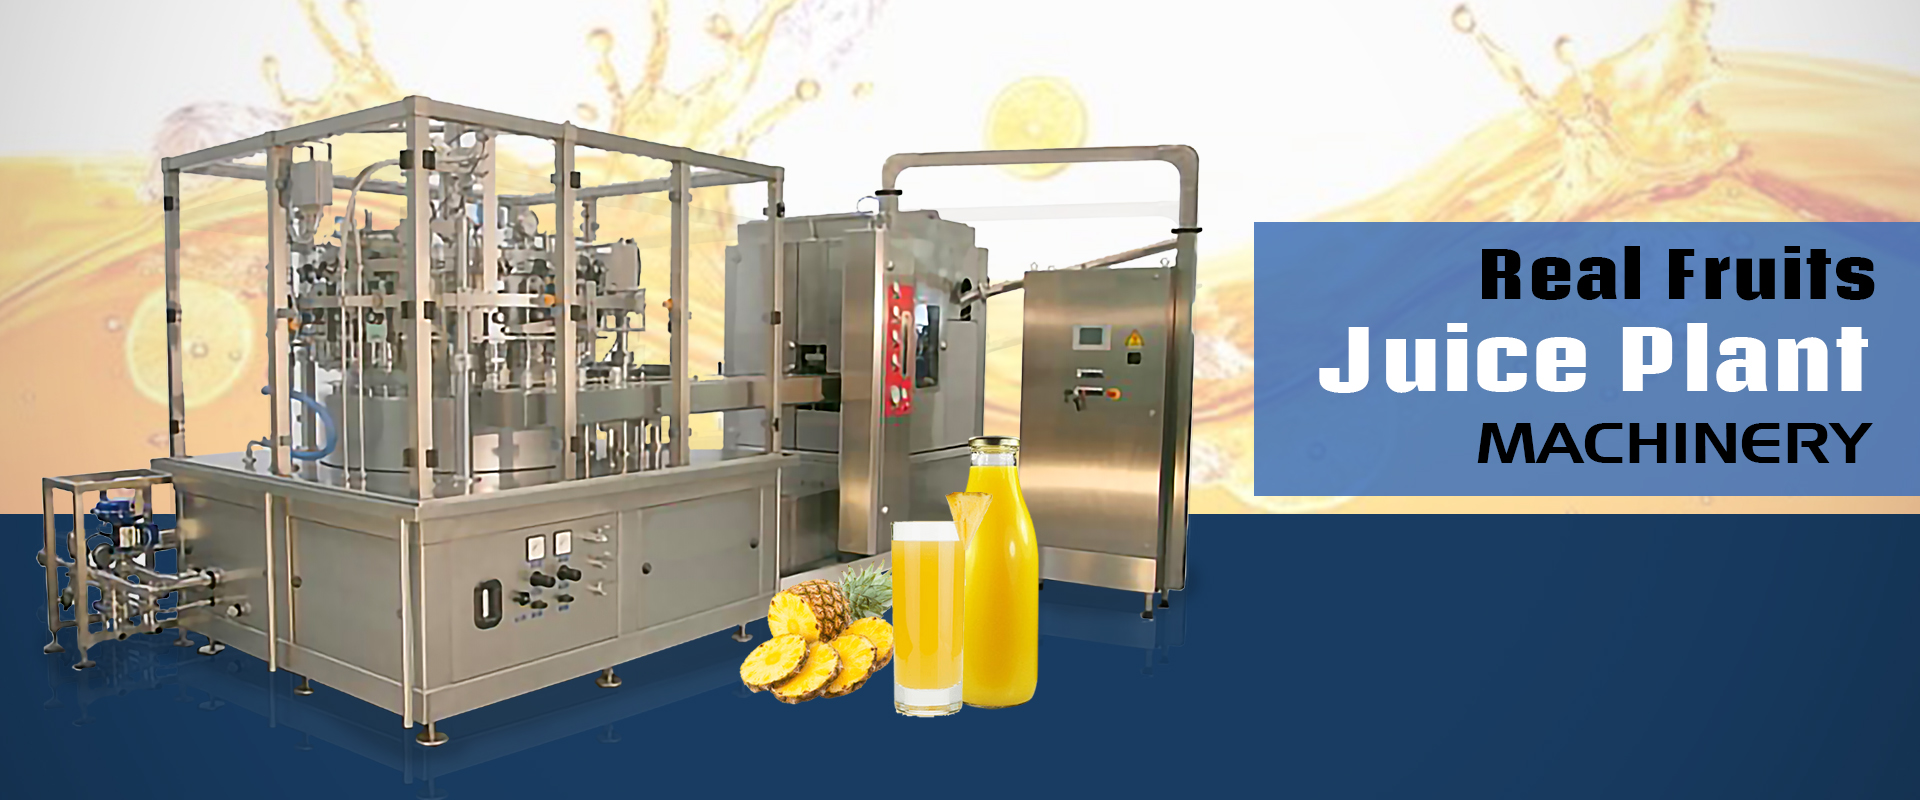 Real Fruits Juice Plant Machinery In Hubli